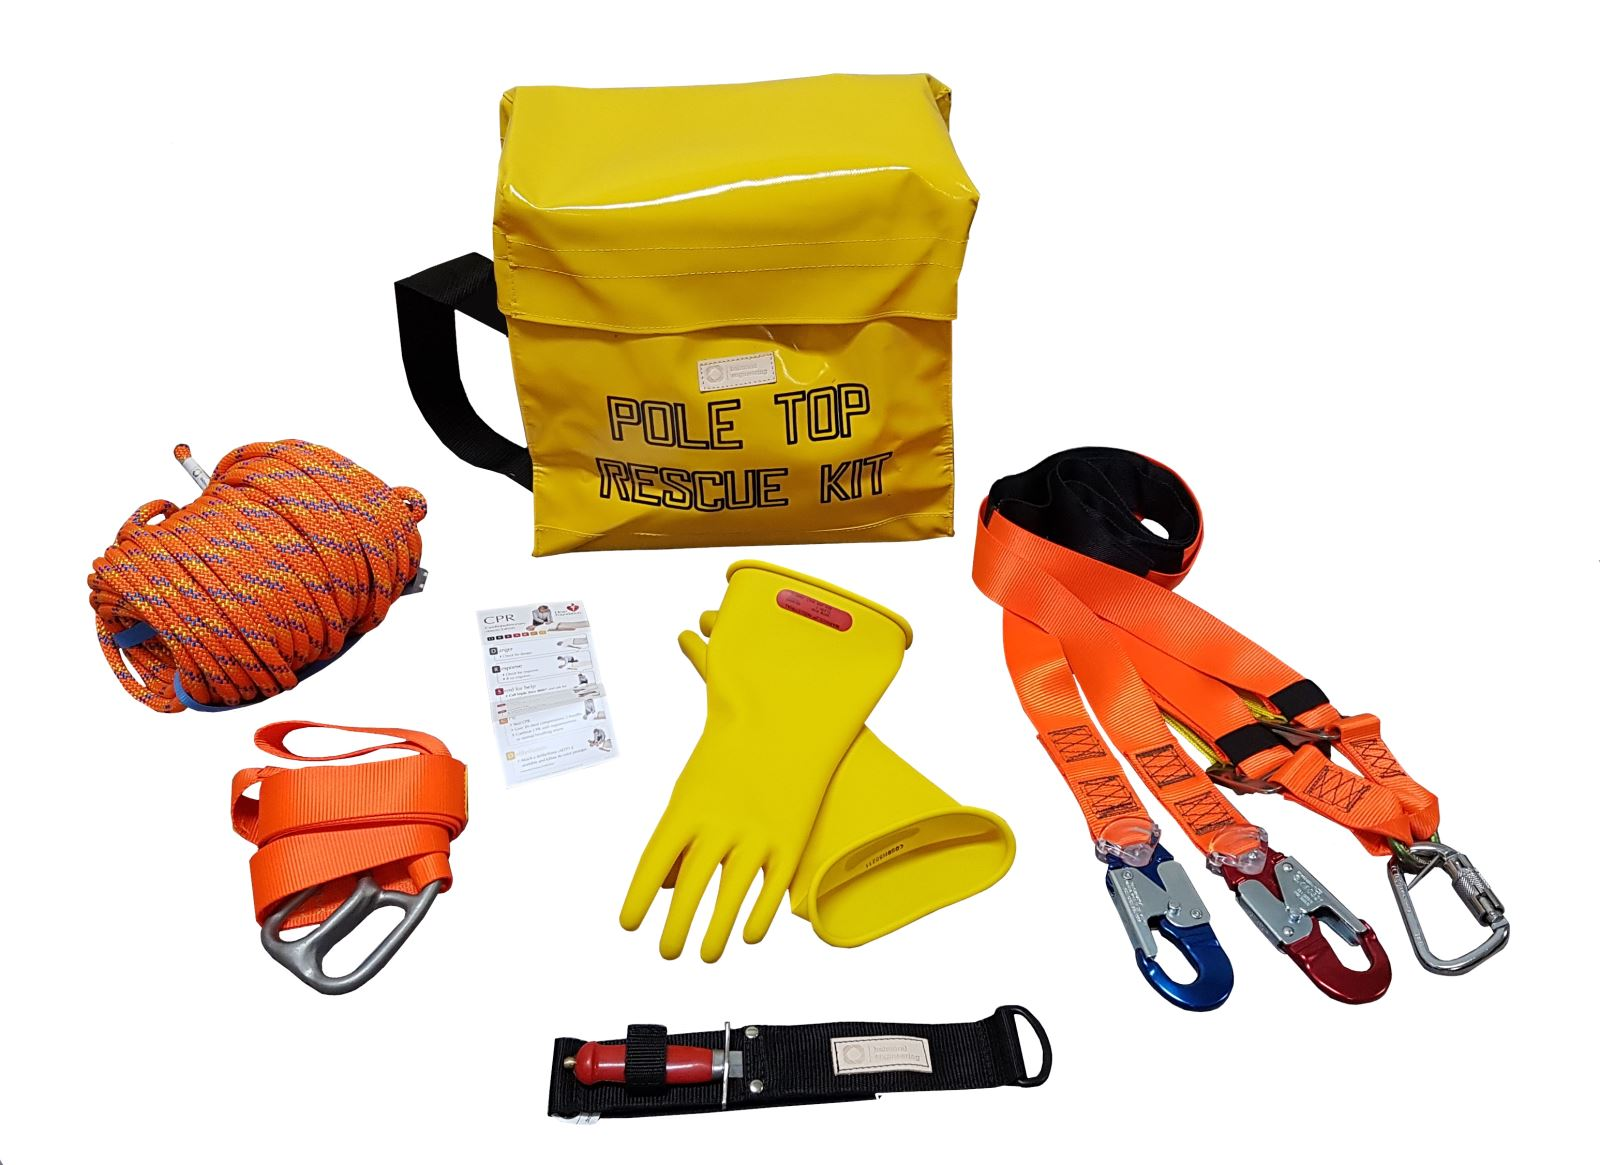 Pole Top Rescue Kit (NSW CSPs)